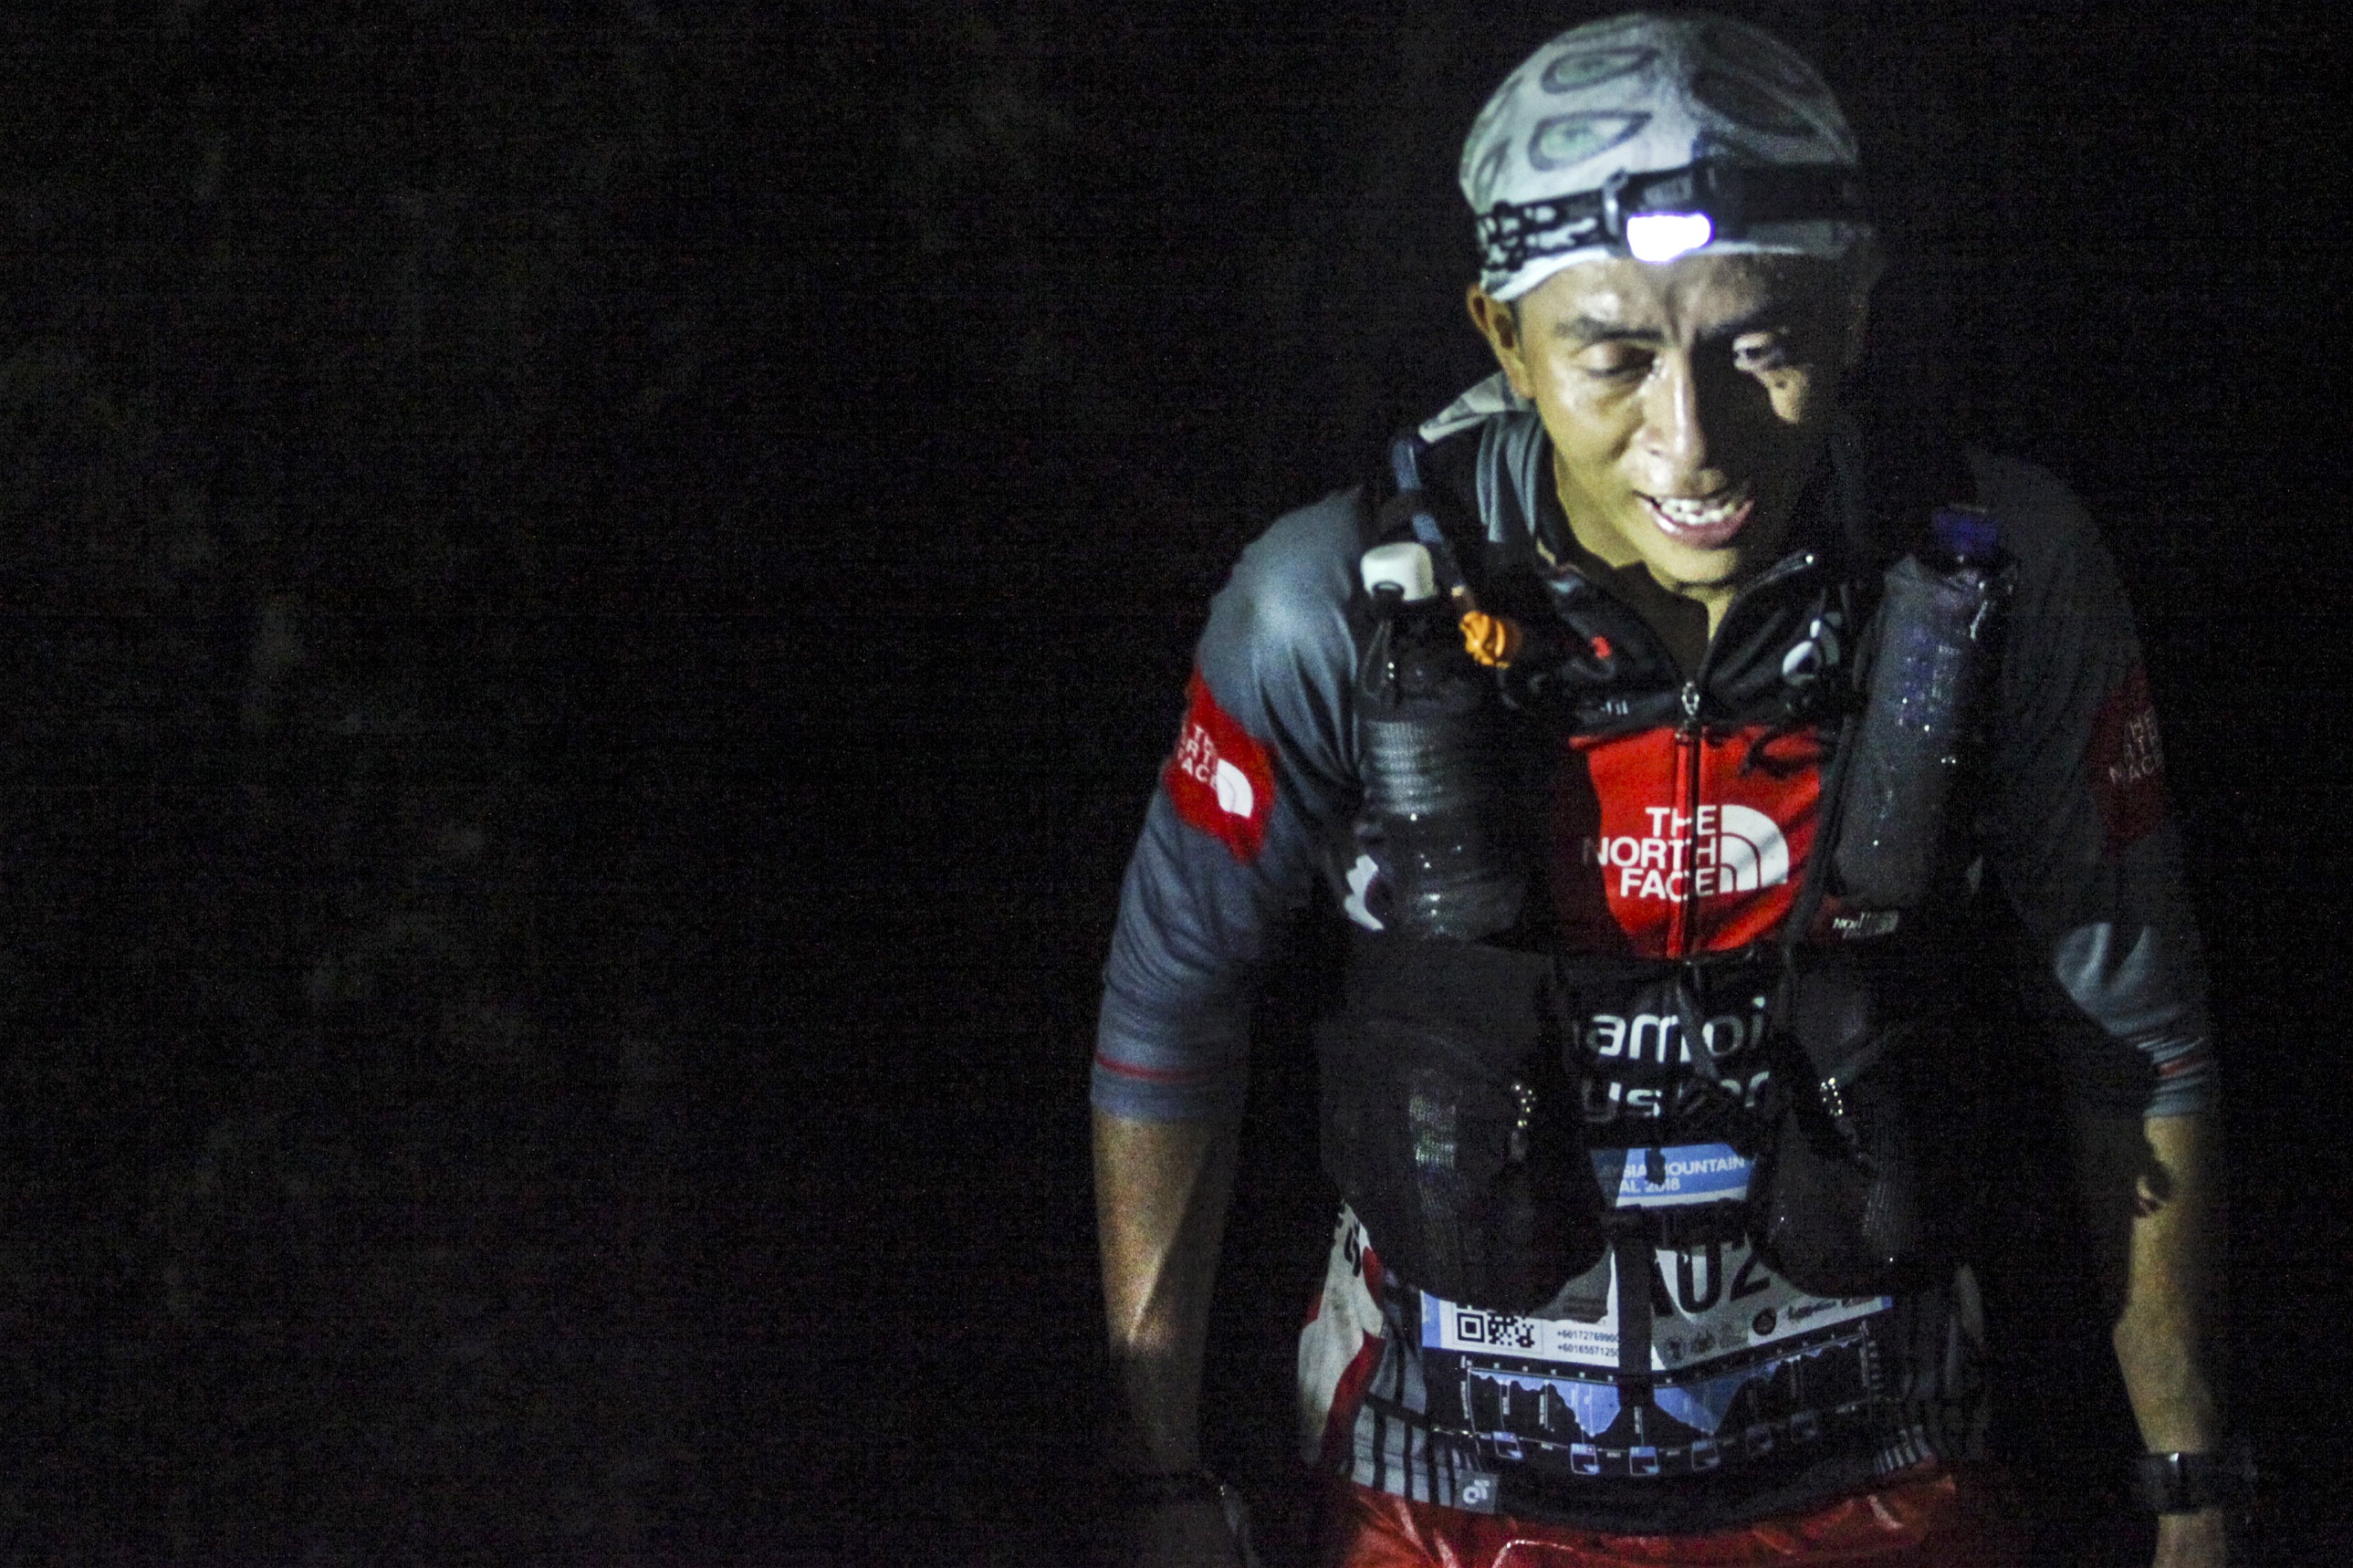 2) MMTF 2018 - Daved Simpat. It's not an easy feat, and darkness is just one of the challenges faced by ultra trail runners